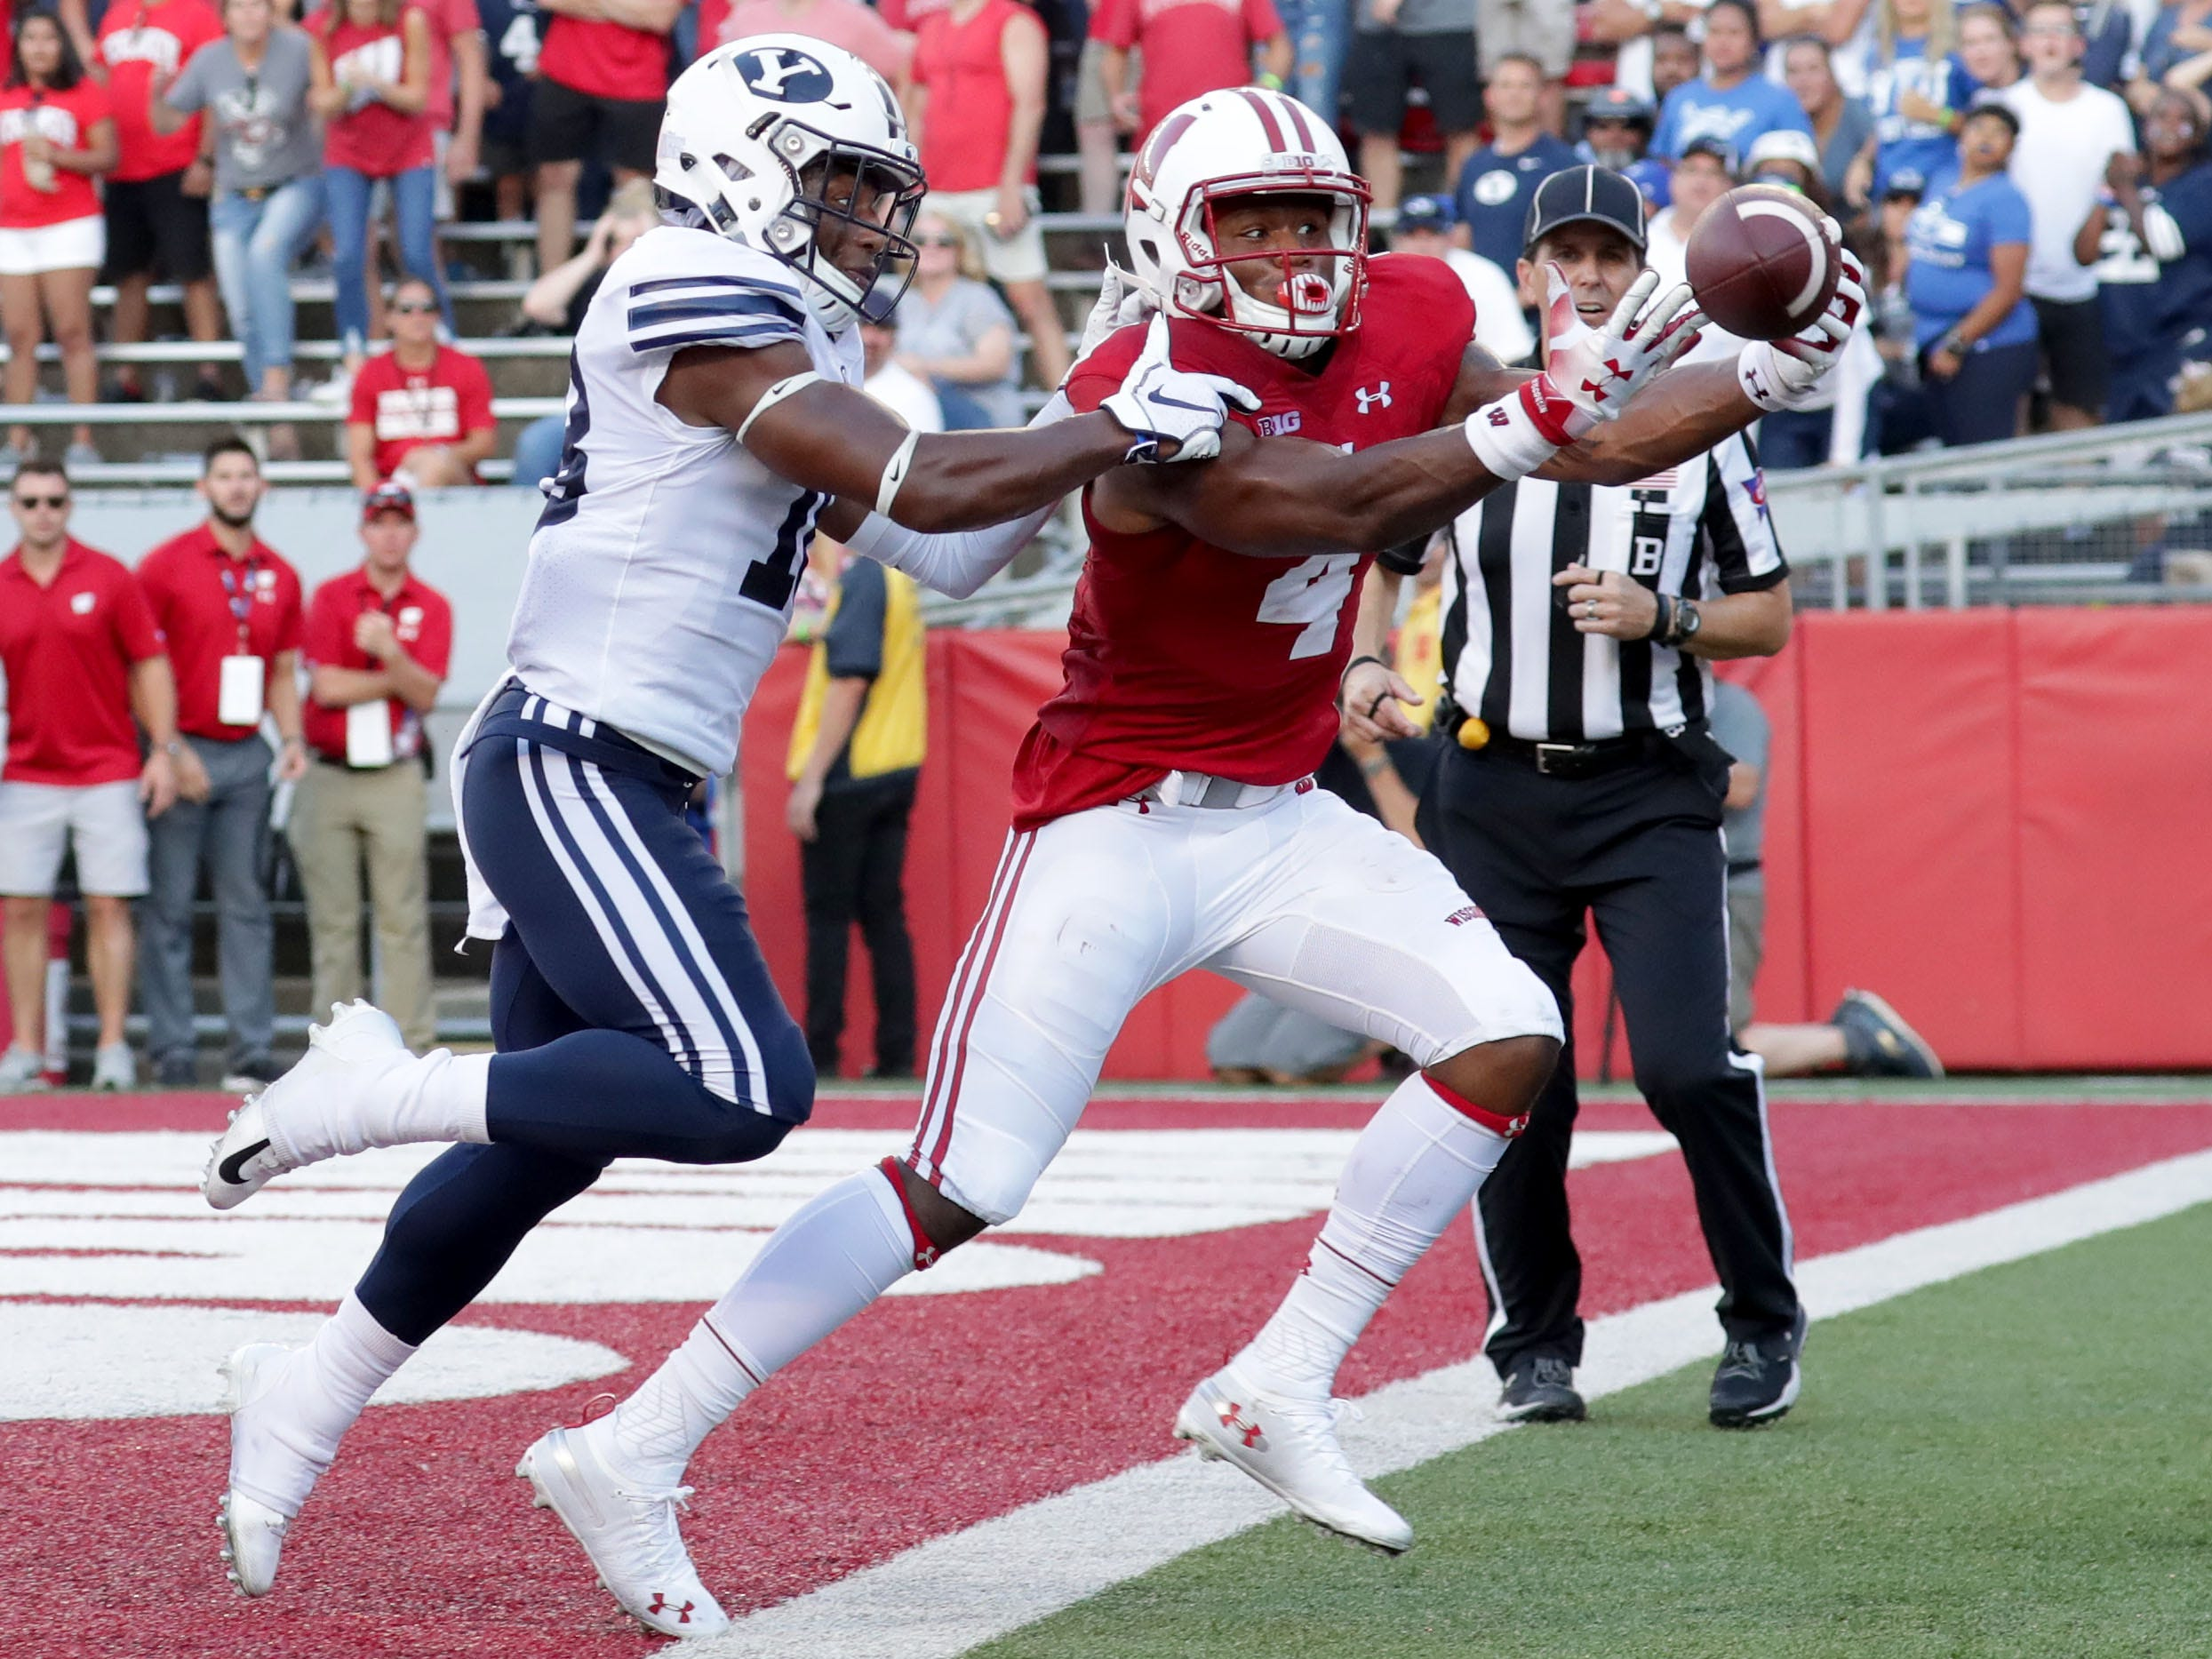 Wisconsin Badgers wide receiver A.J. Taylor (4) can't haul in a pass while defended by Brigham Young linebacker Sione Takitaki.